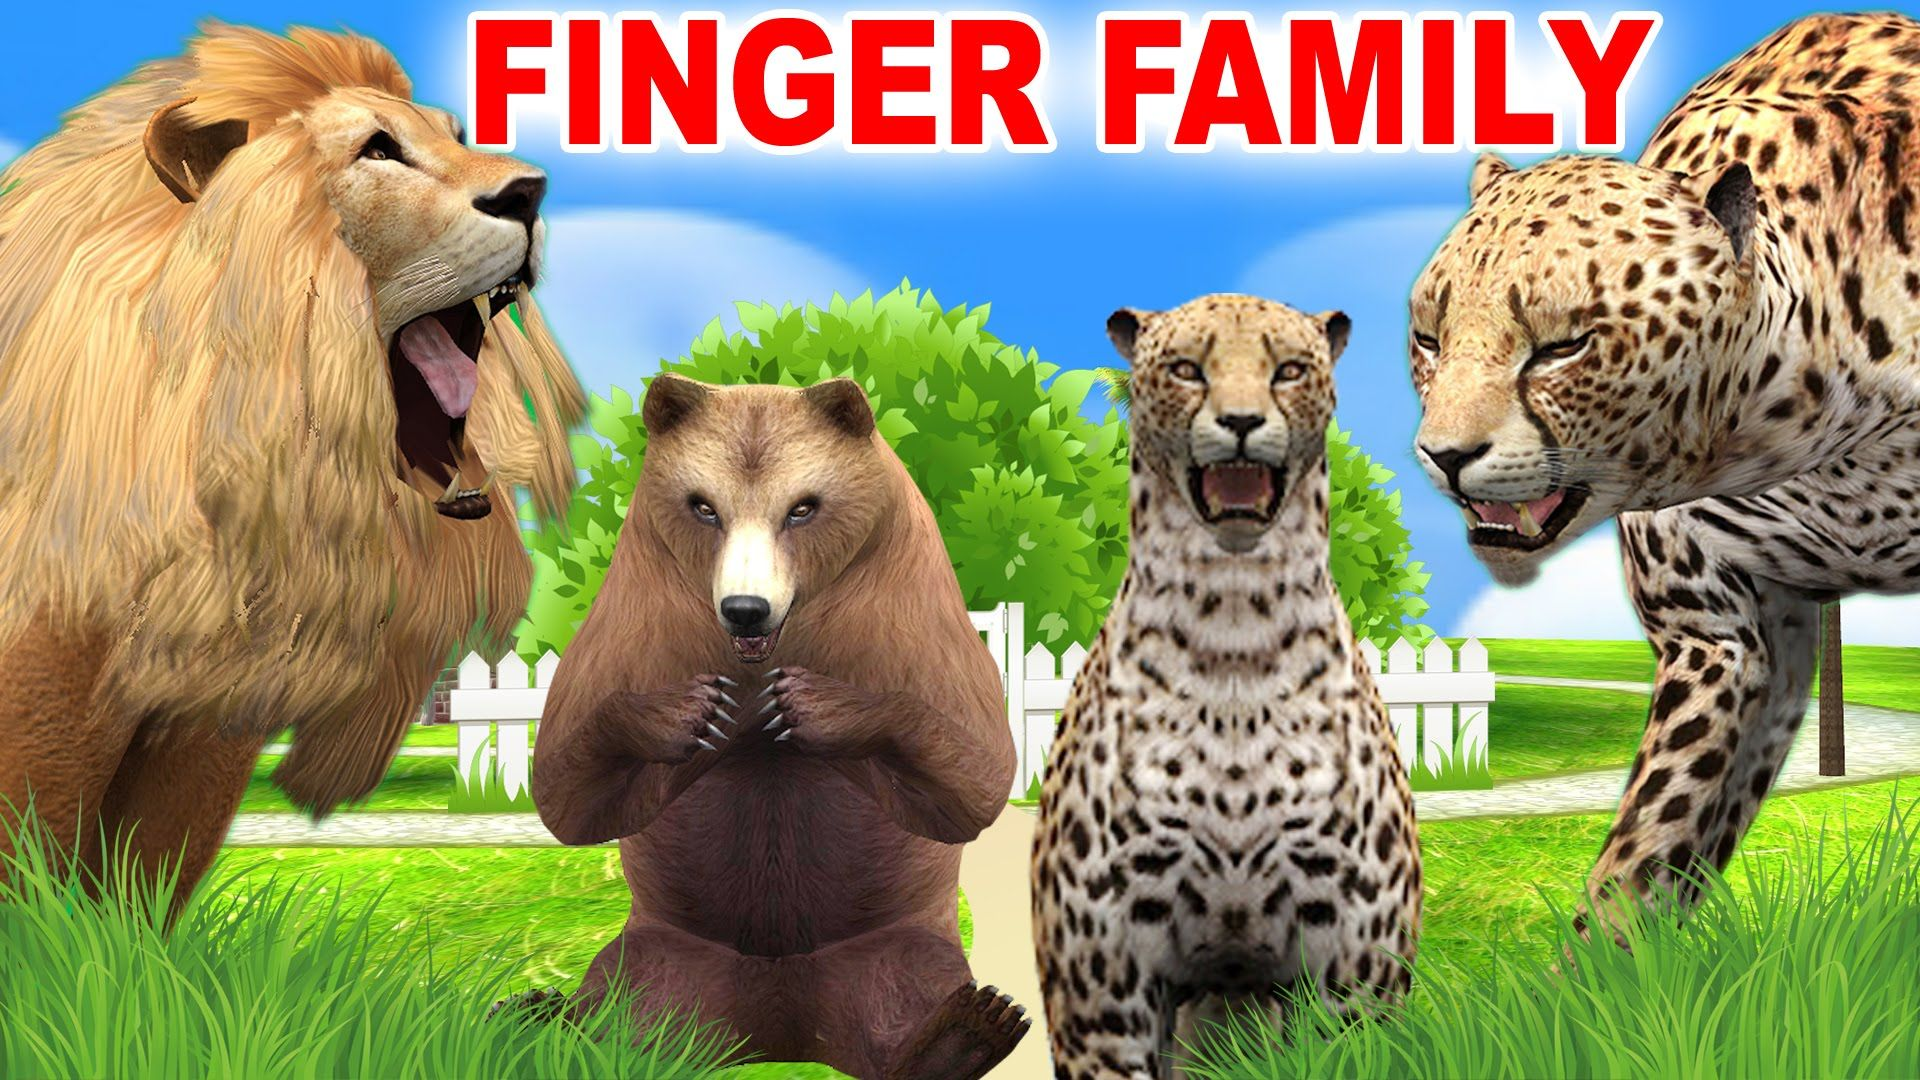 wild animals cartoons finger family nursery rhymes funny animal